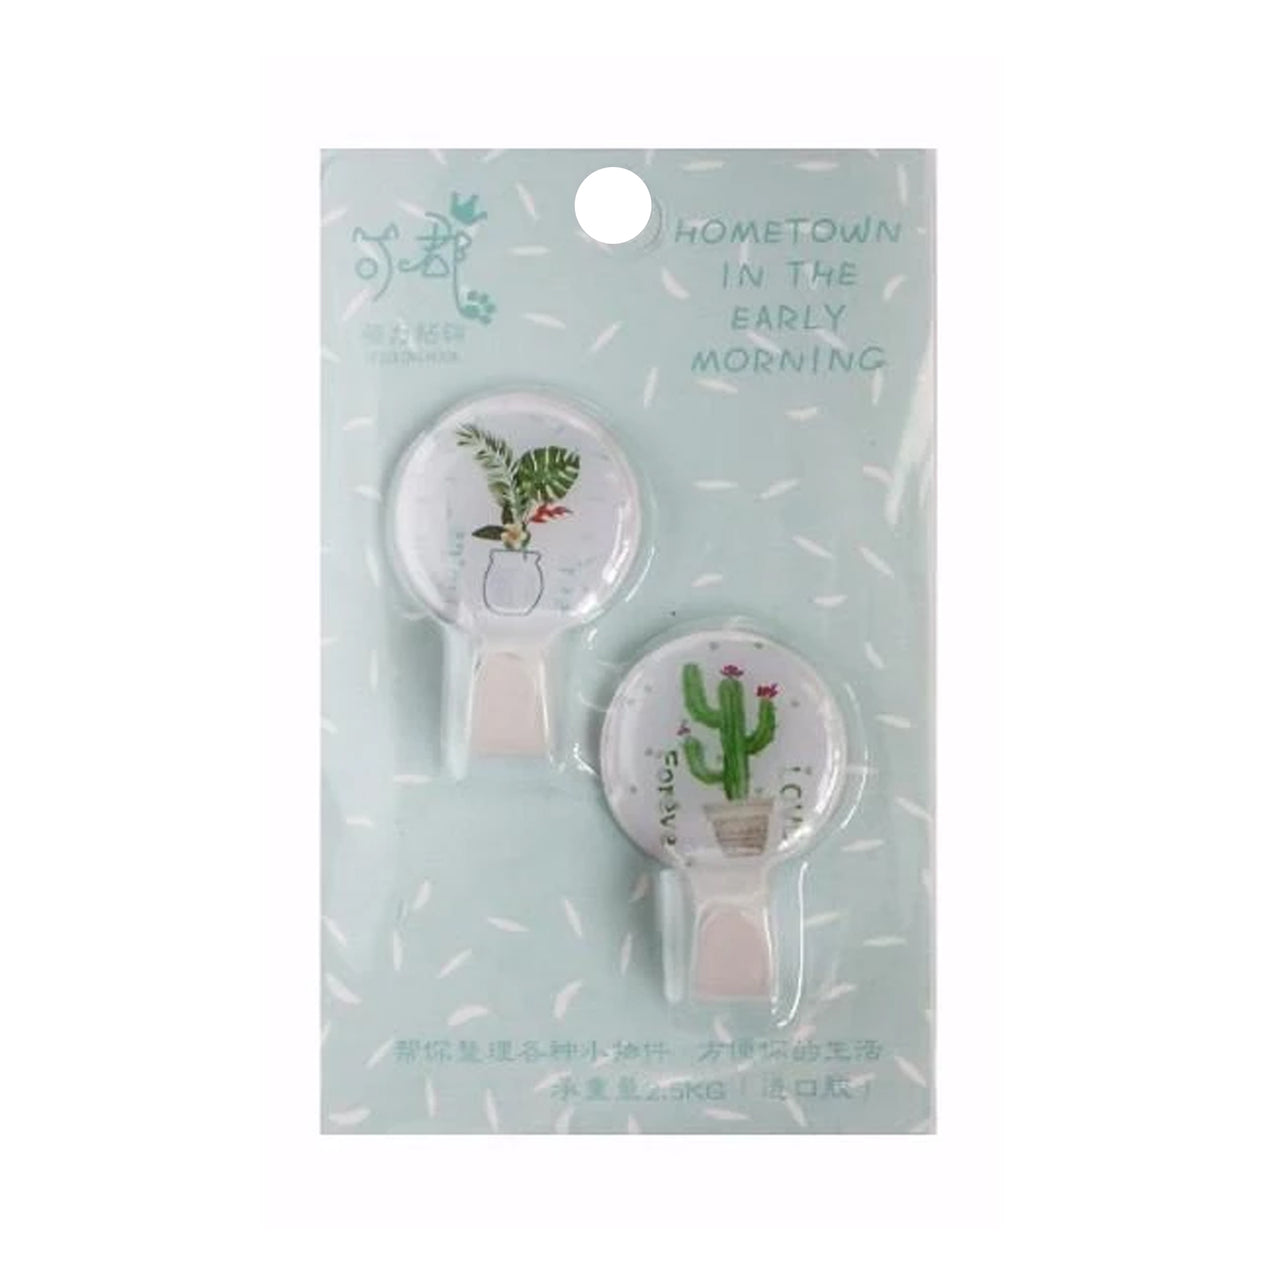 Set Of 2 Self Adhesive Hooks - Vase